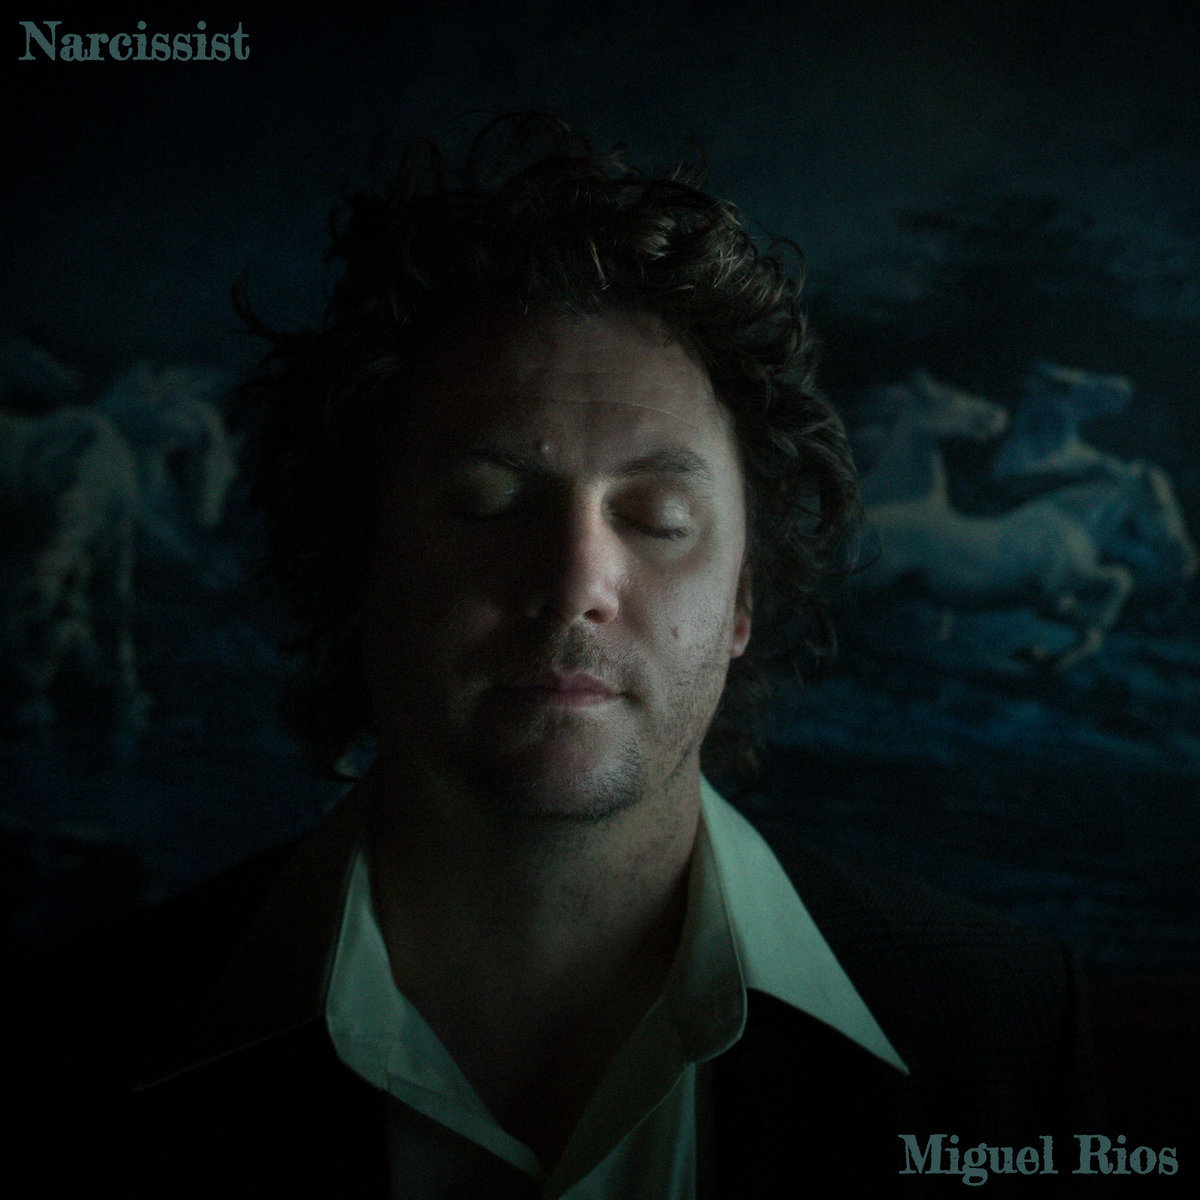 Narcissist by Miguel Rios